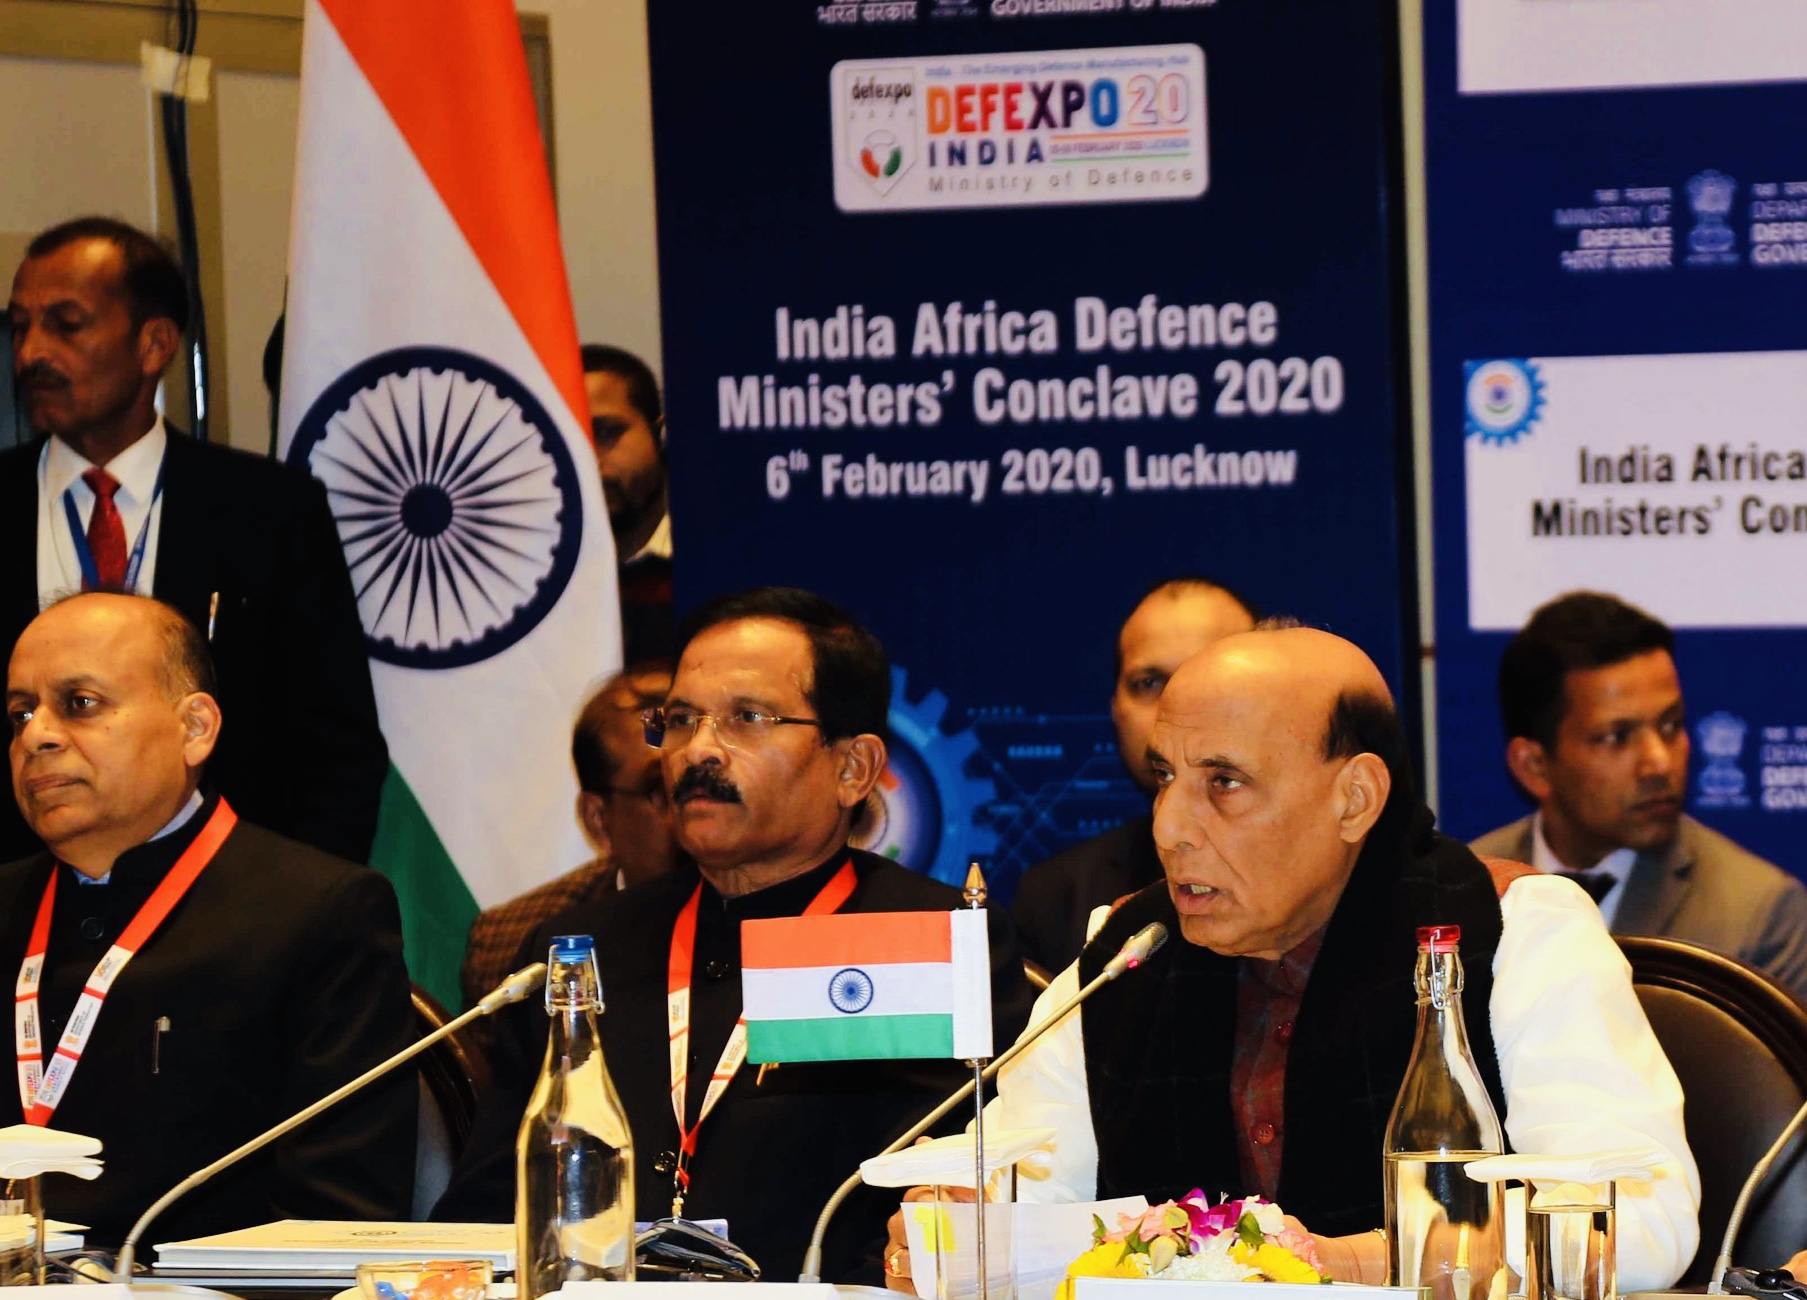 India looks forward for deeper cooperation in defence industry with African nations: Rajnath